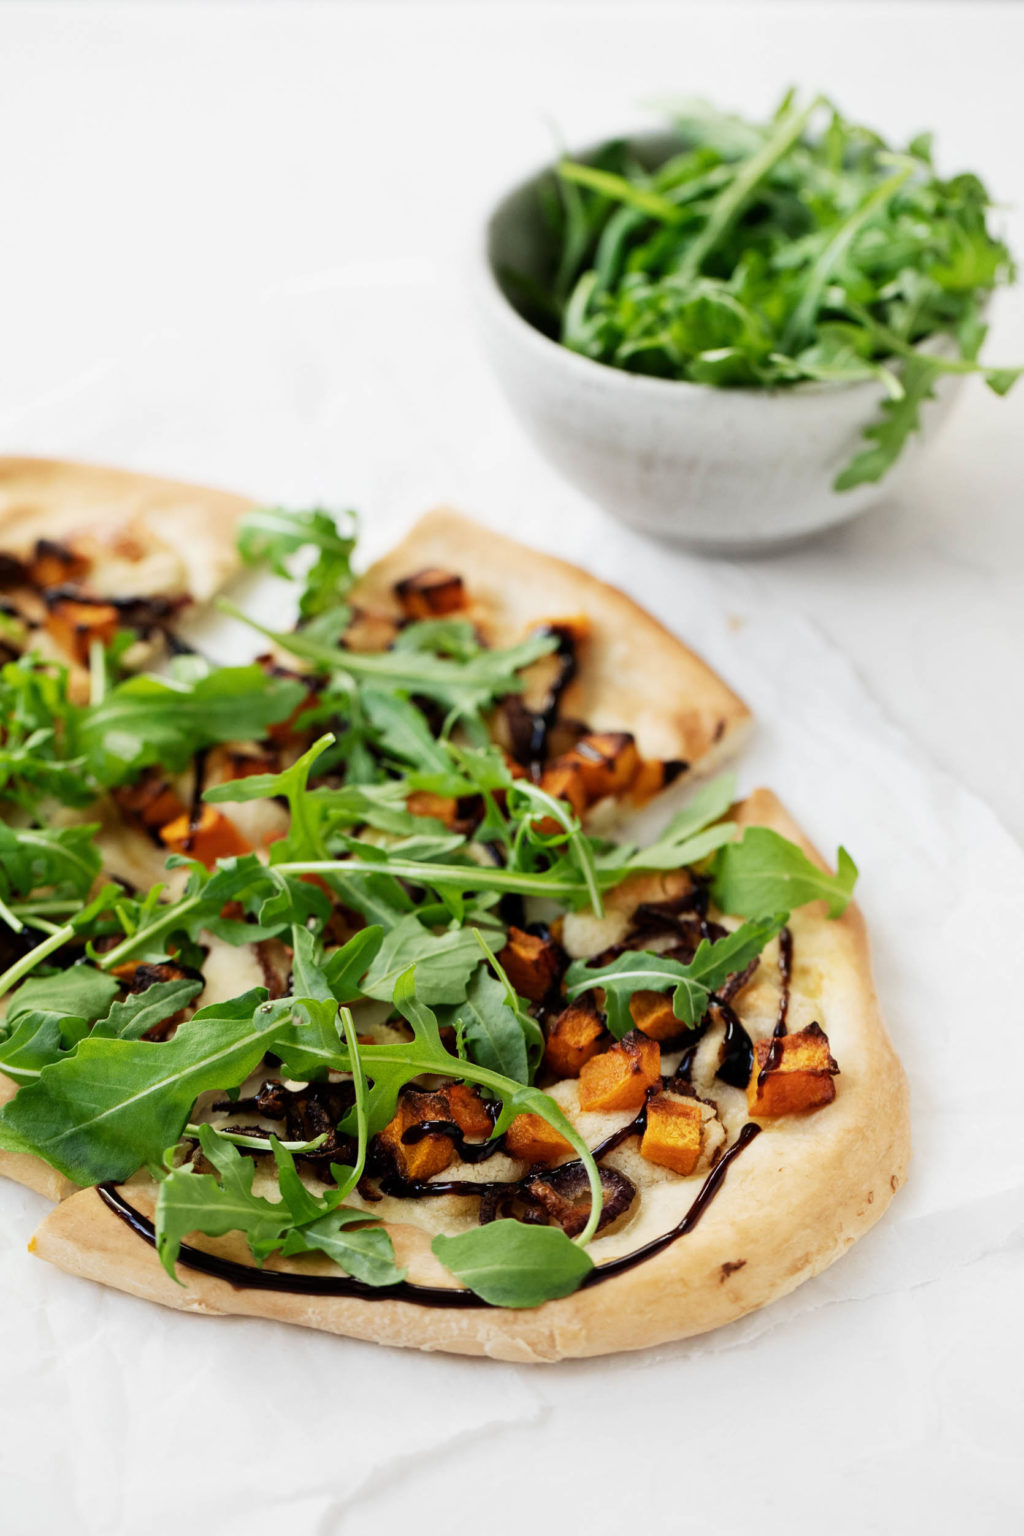 A vegan pizza with roasted butternut squash, red onions, and cashew cheese, topped with bright green arugula and drizzled with balsamic vinegar.